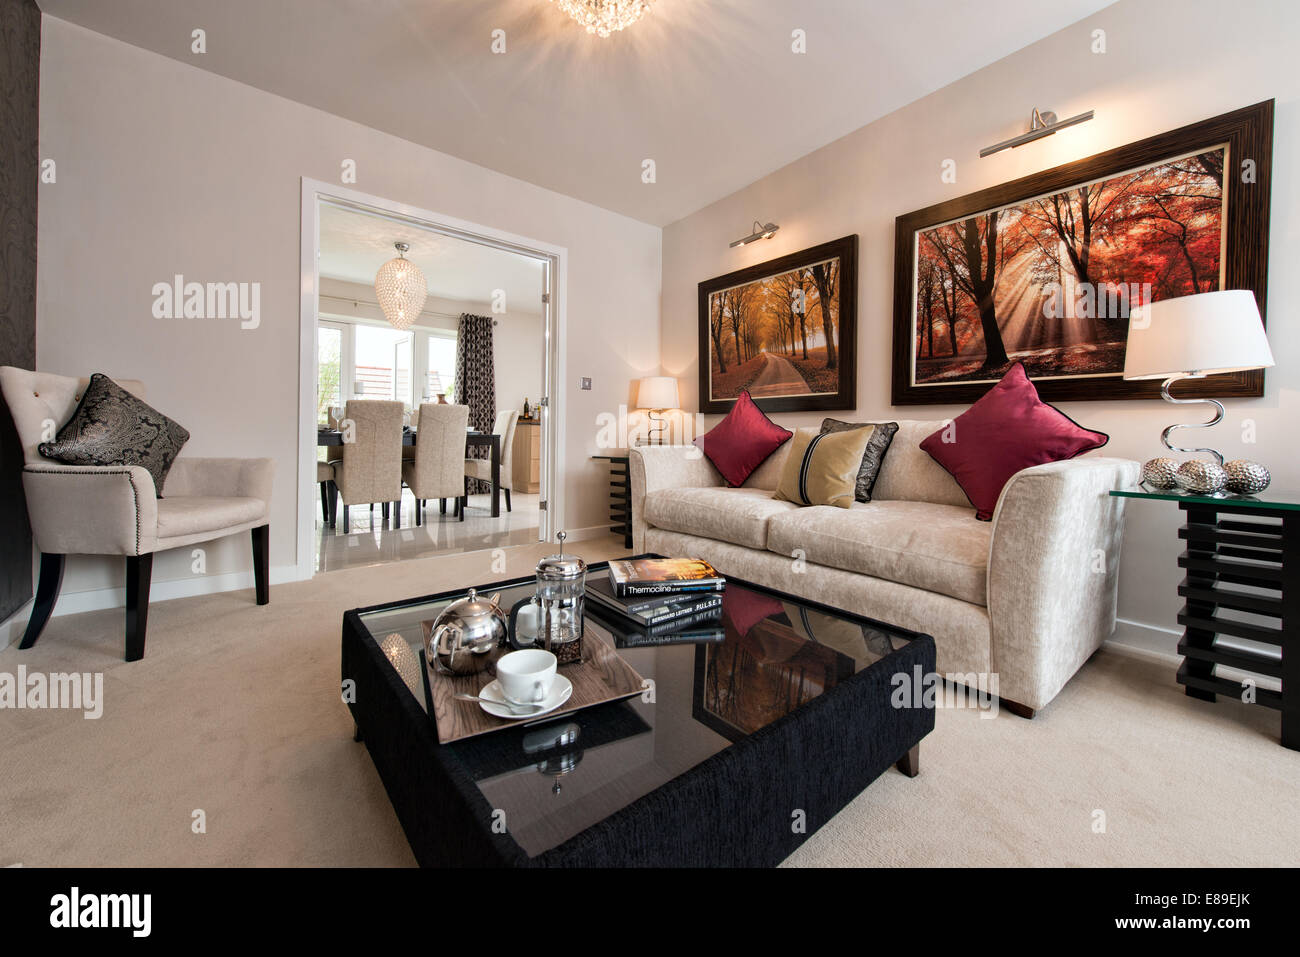 the living room of a persimmon homes show home on a typical british rh alamy com Home Kitchen living room show homes